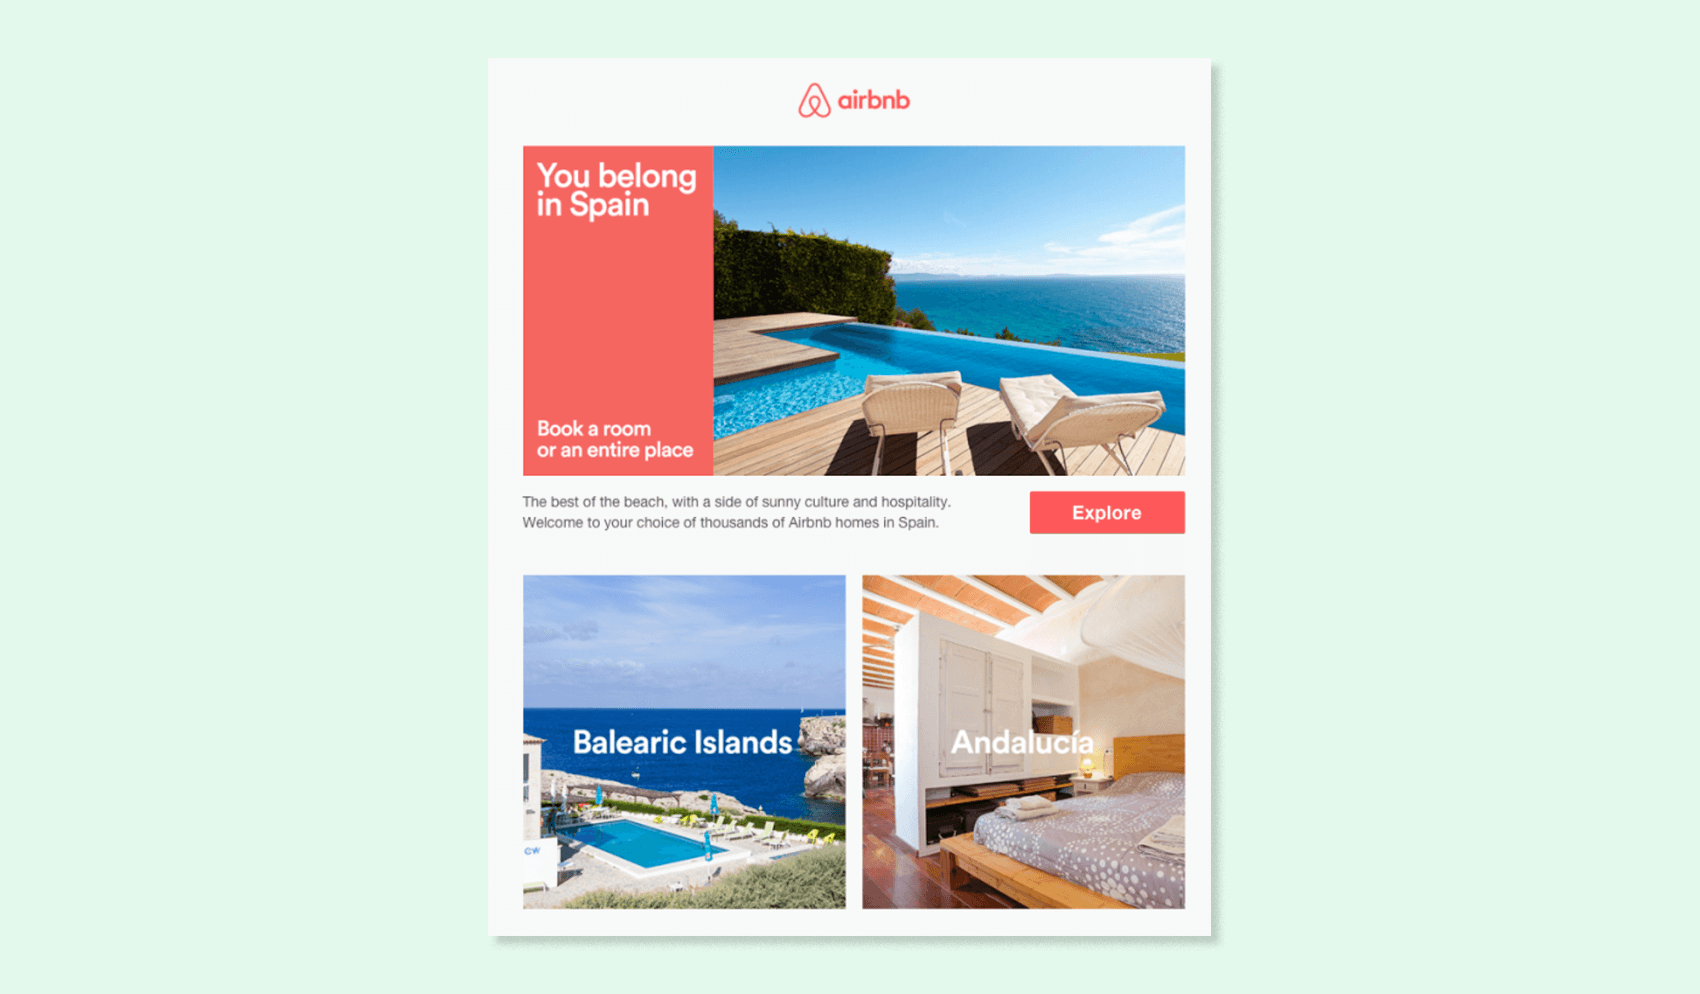 Airbnb subject line